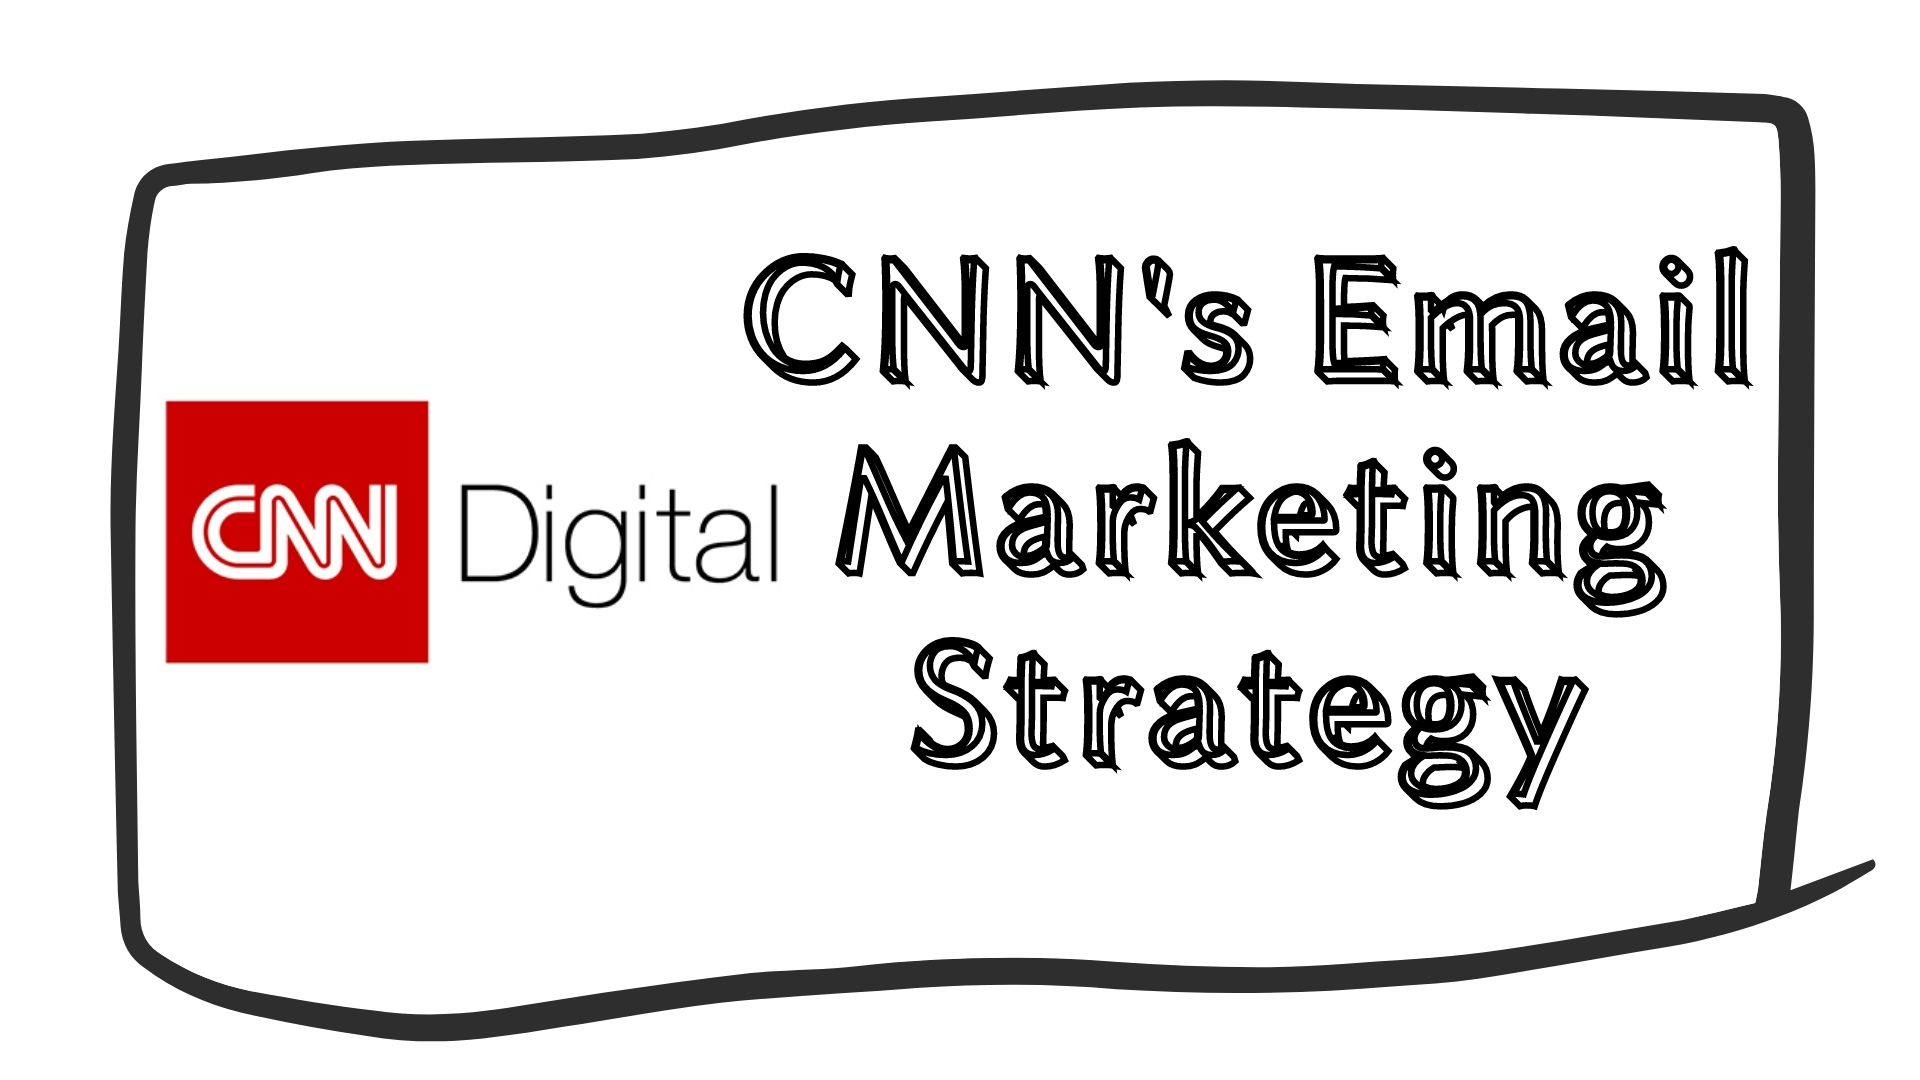 CNN Email Marketing strategy for website traffic growth